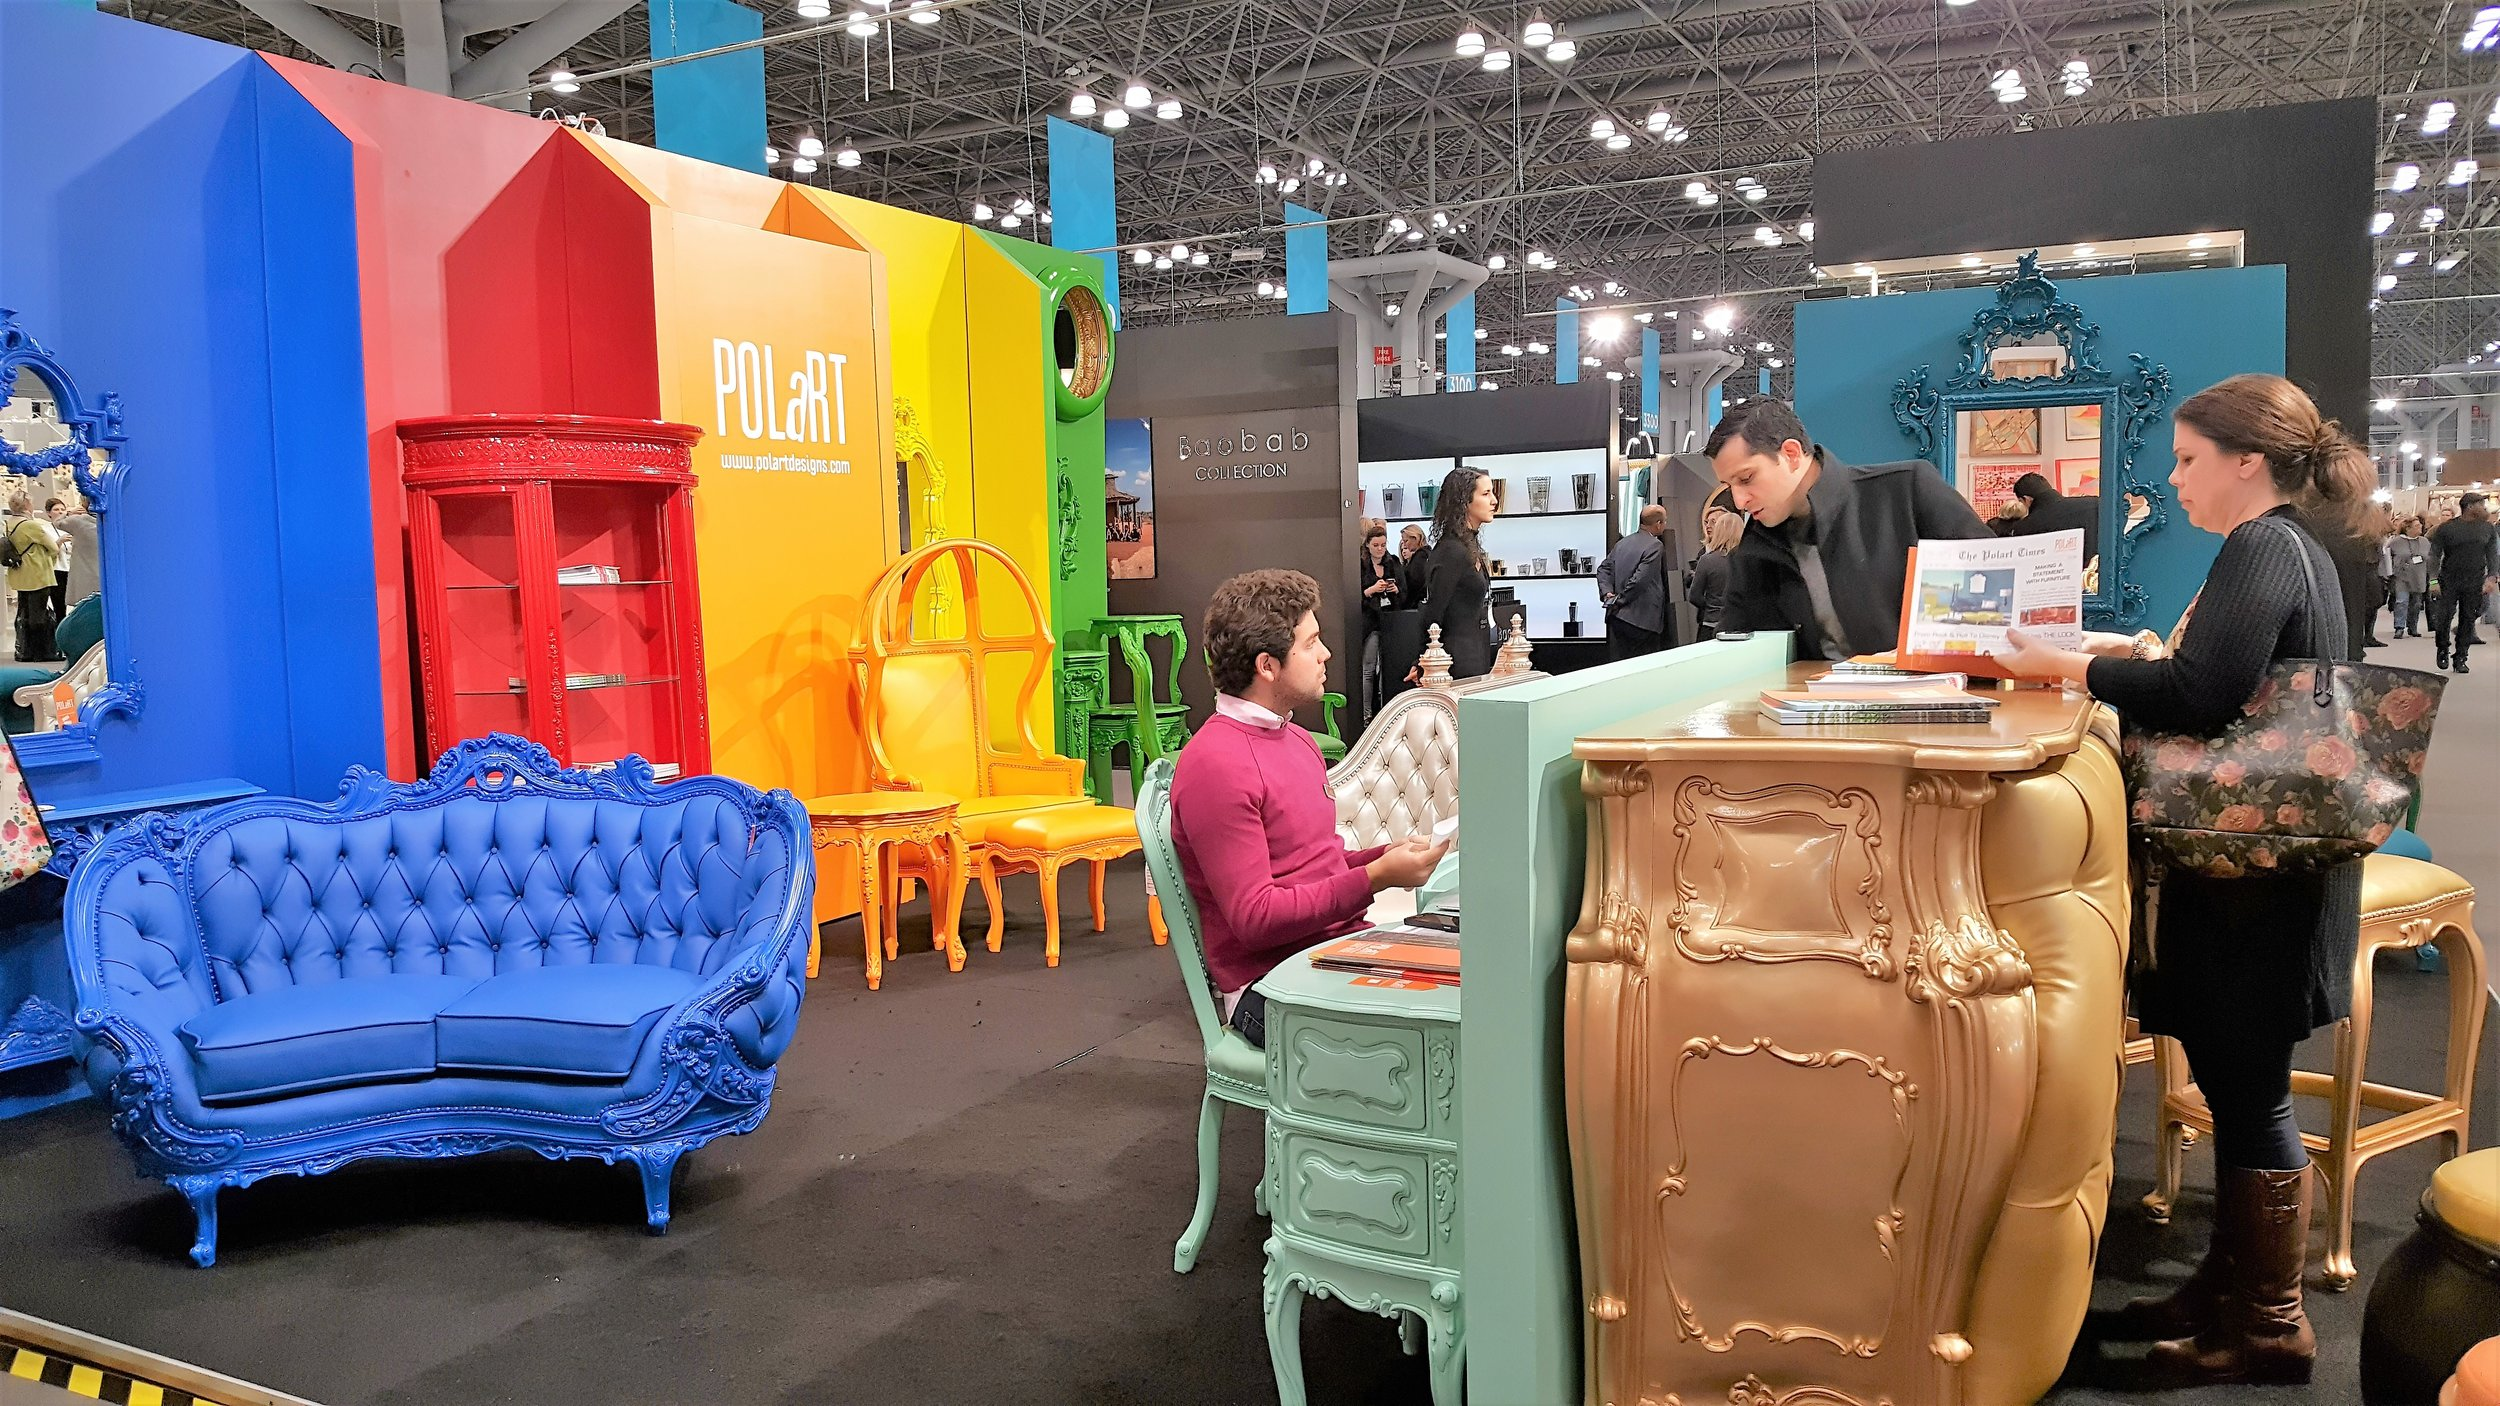 11 FUN FINDS TO ADD SOME COLOR AND COMFORT TO YOUR WORKDAY - Twice a year some 2,400 suppliers of home, lifestyle and gift products show their latest wares at NY NOW at the Javits Center.